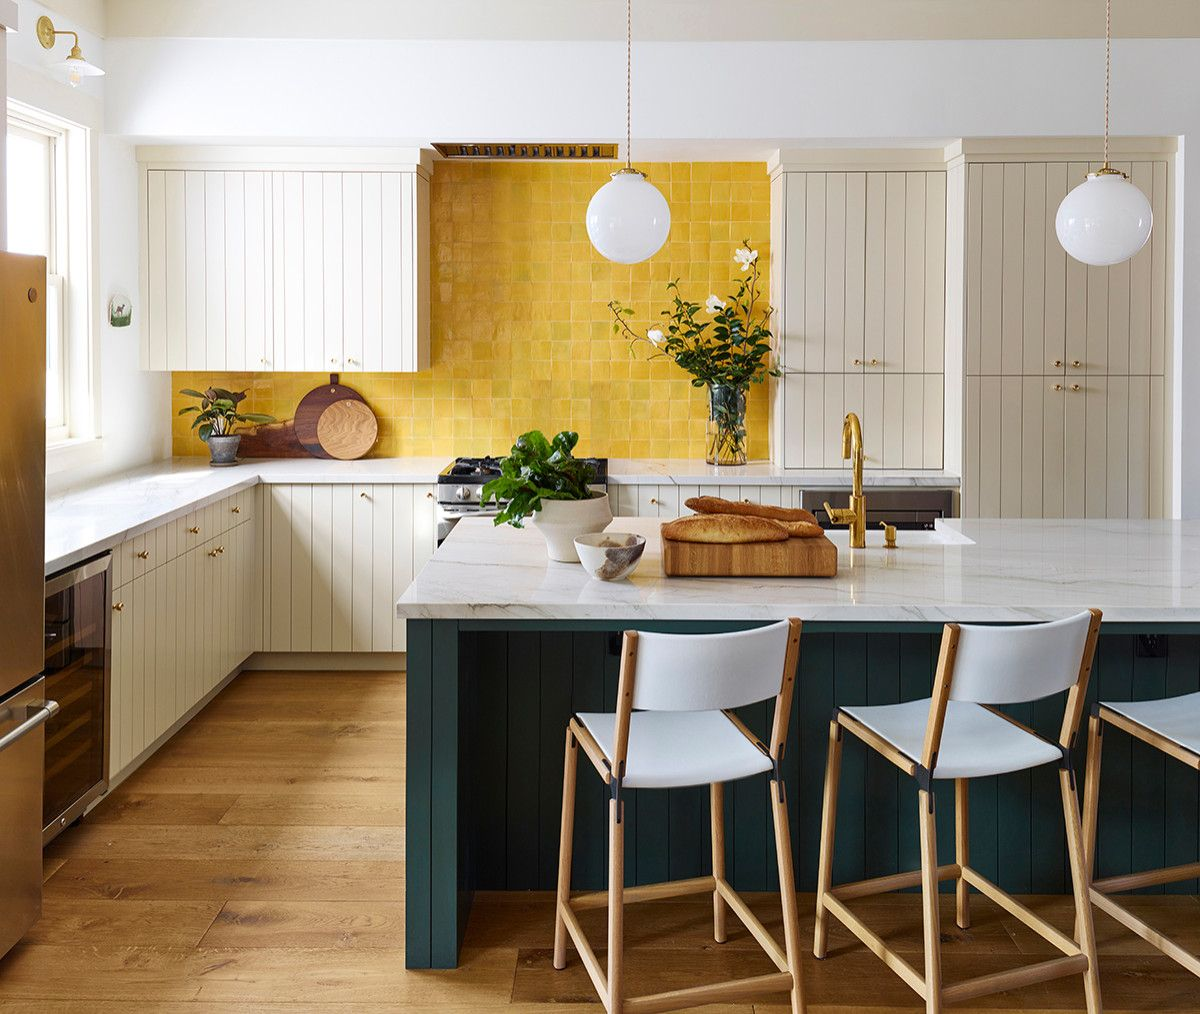 Dark green kitchen sialnd and a brilliant yellow backsplash for the chic farmhouse kitchen